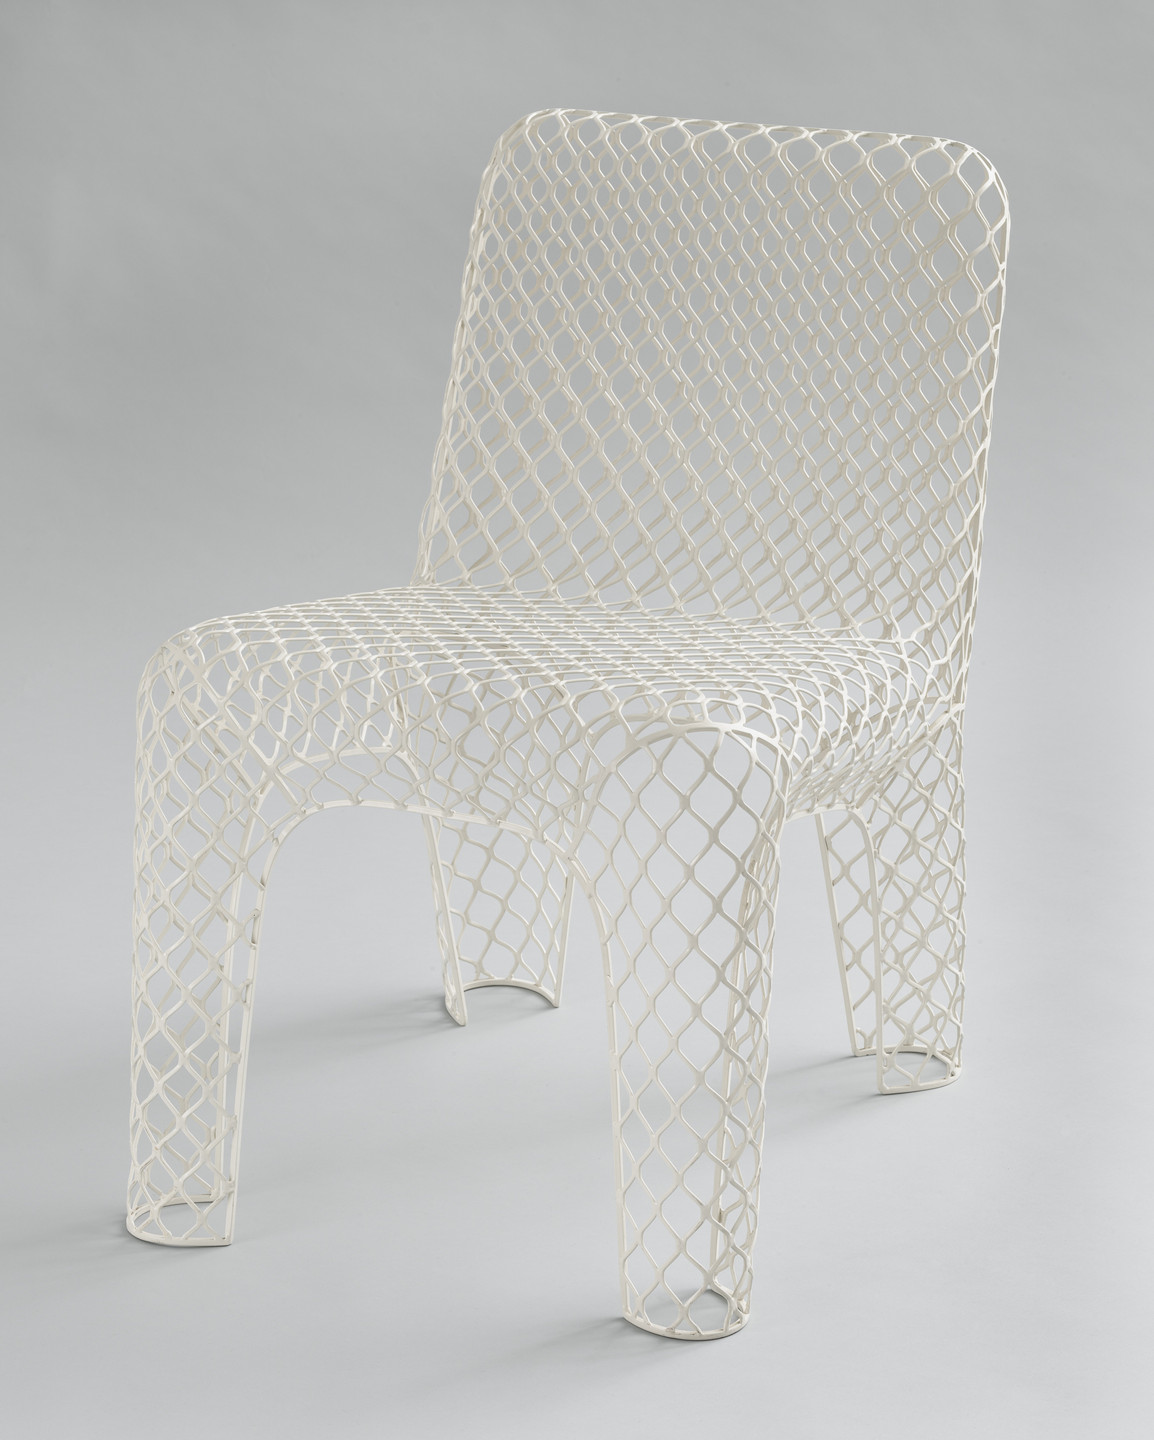 Chris Kabel. Mesh Chair. 2005